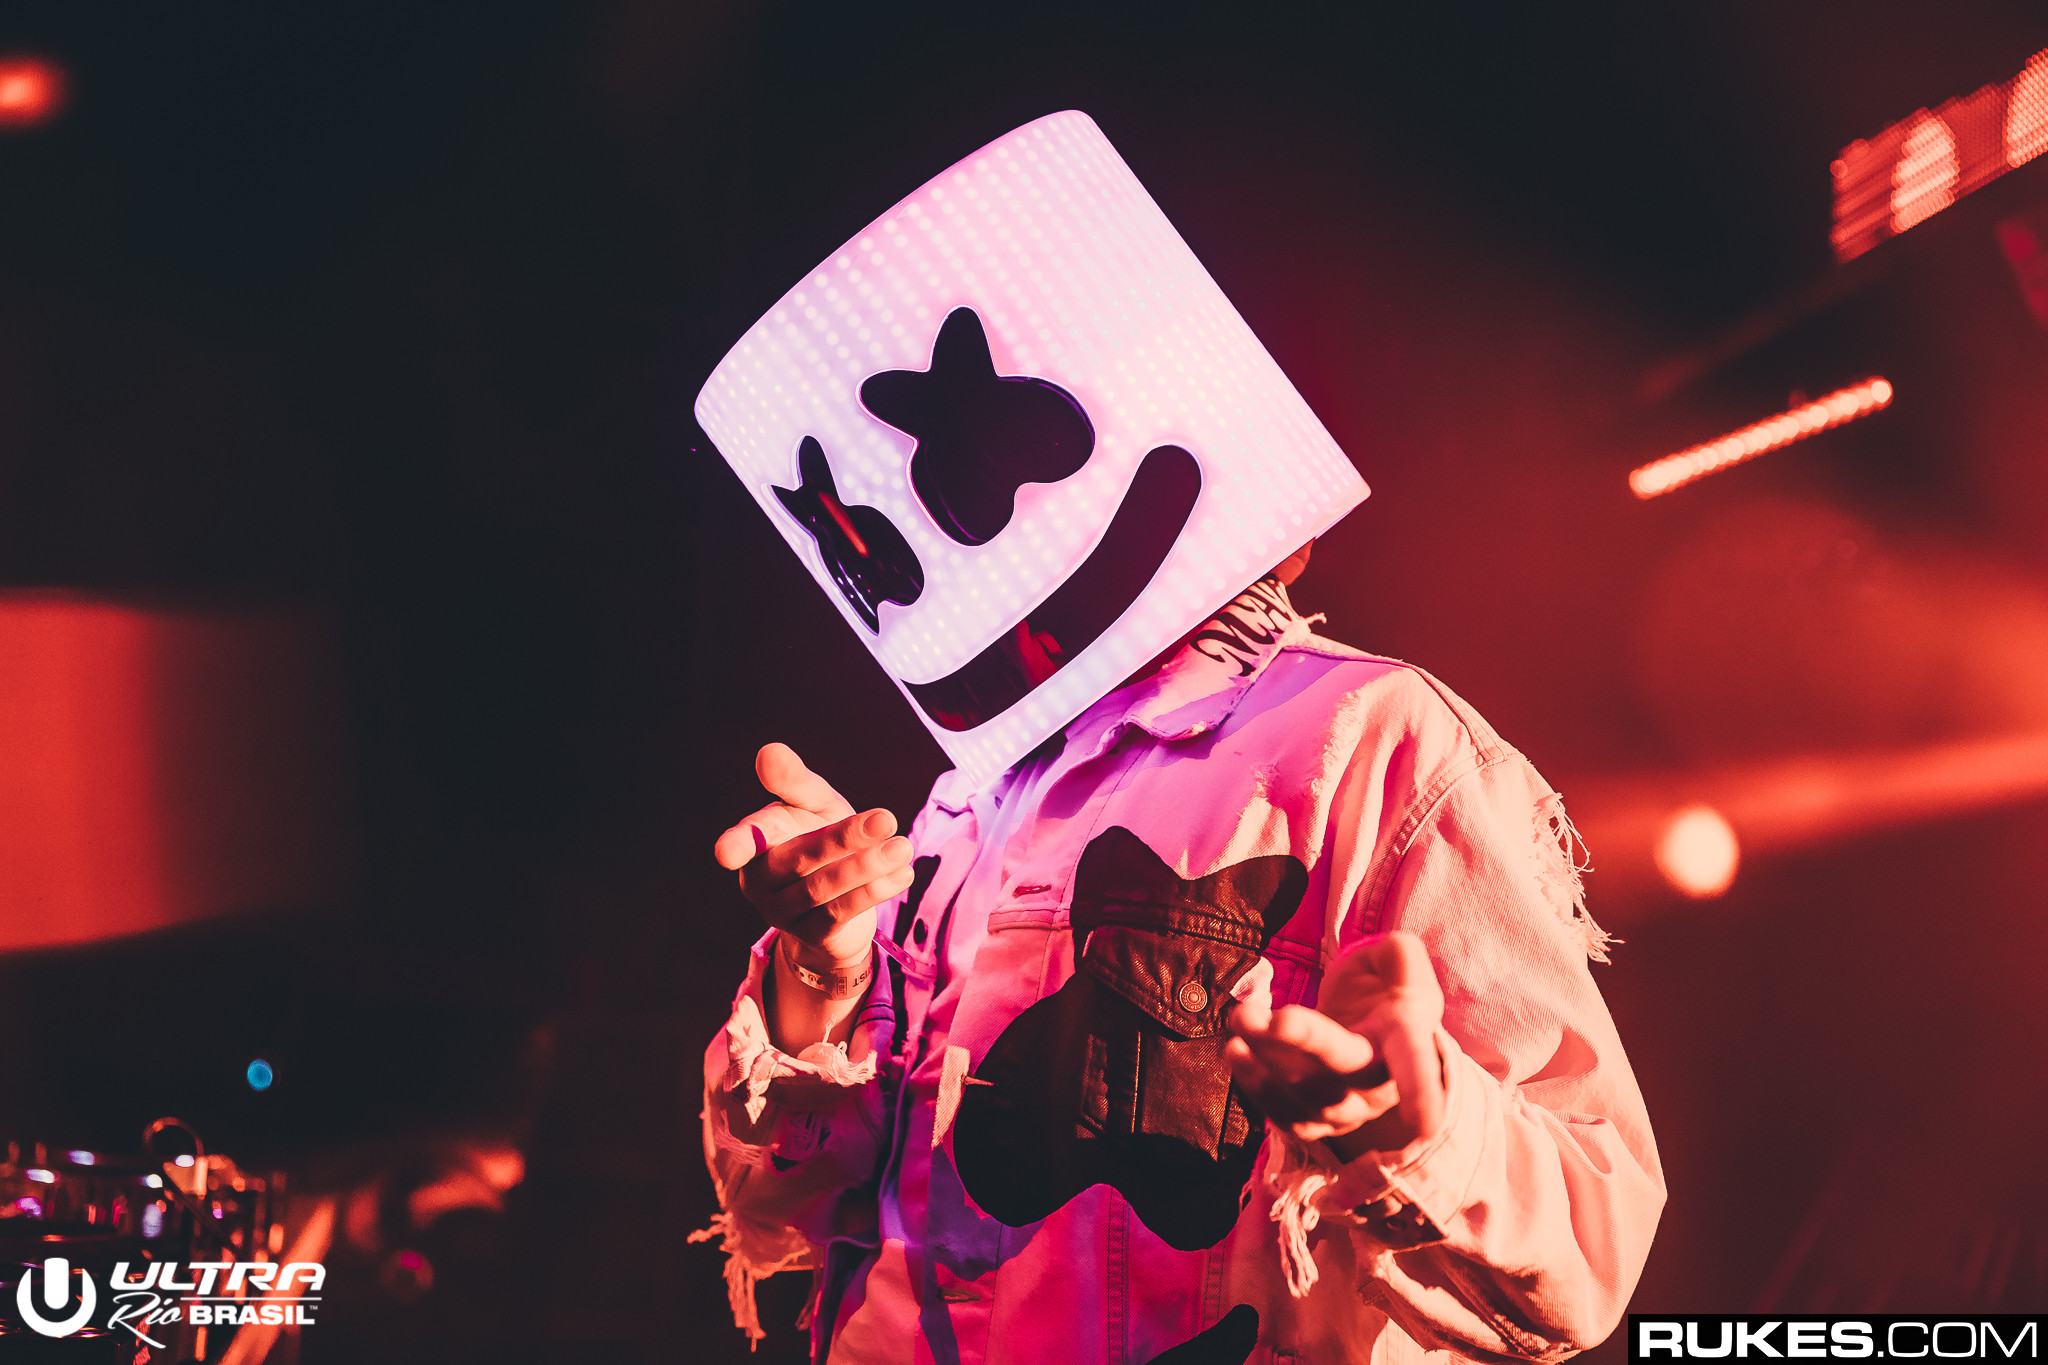 Marshmello Is Going Full-On Dubstep with His Next Collab